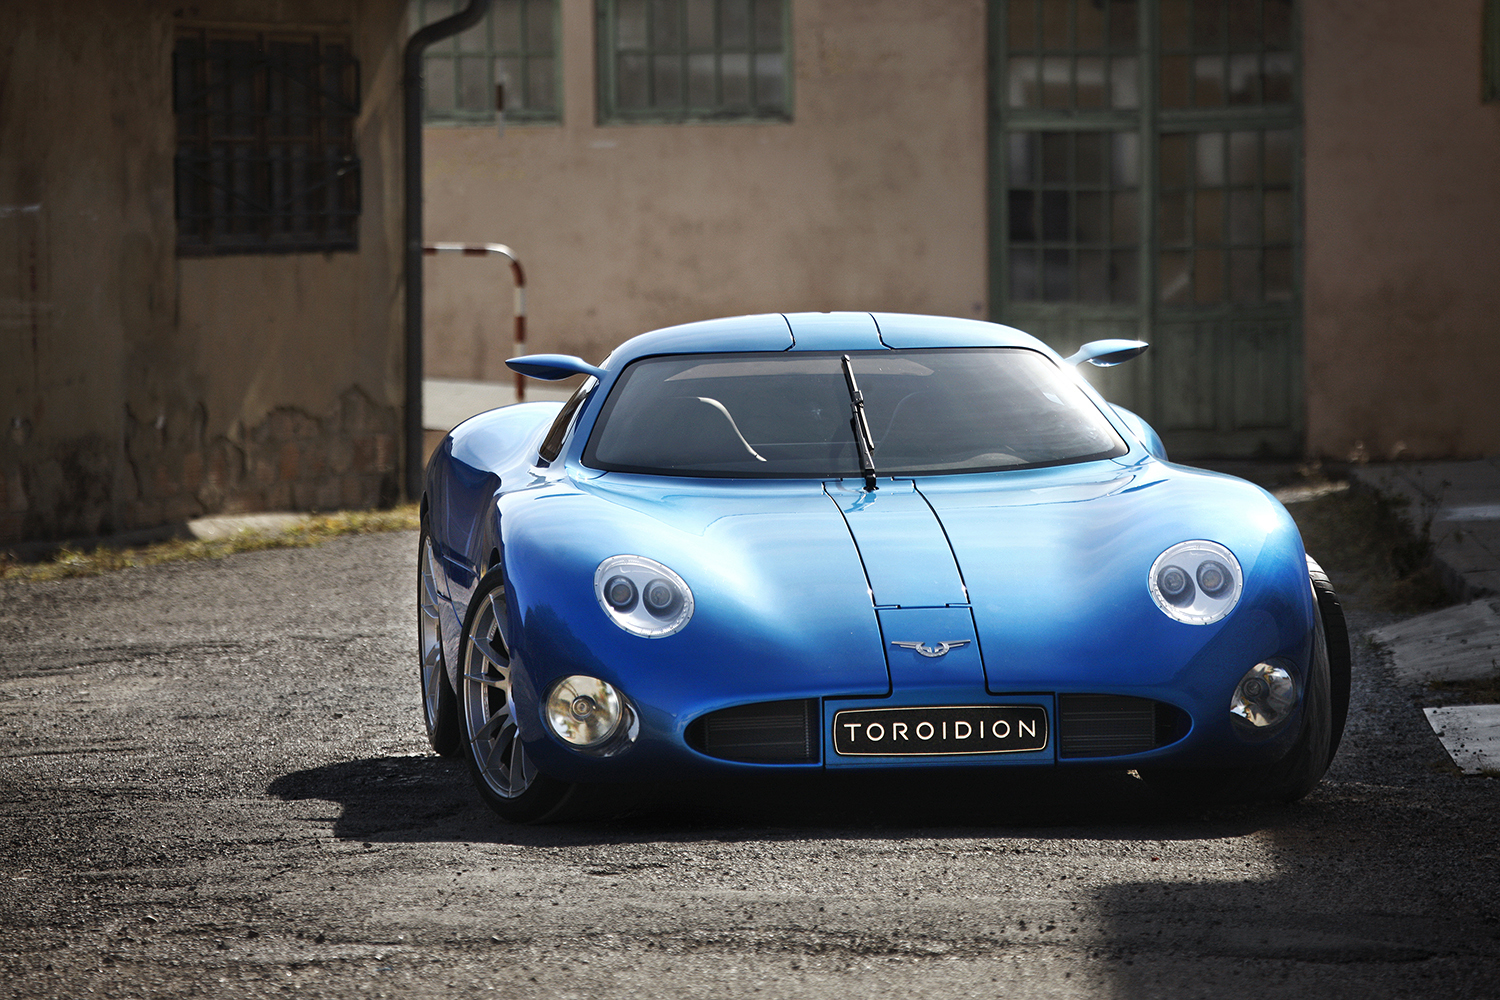 The Toroidion Electric Supercar From Finland Has The Equivalent Of 1,341hp And Is Insane